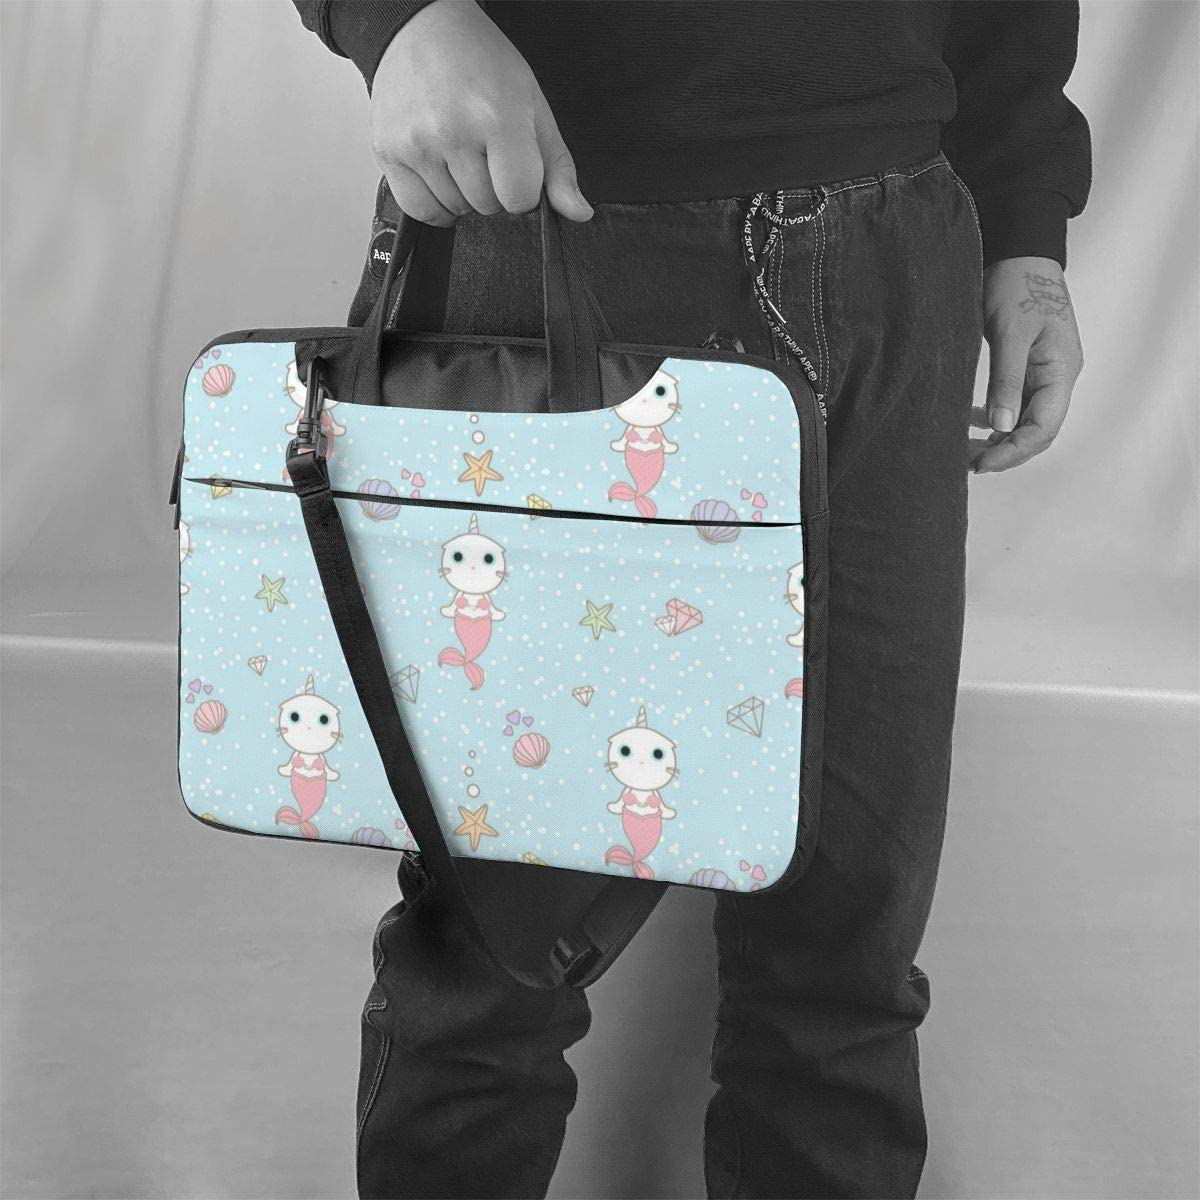 Cute Cat Unicorn Mermaid Laptop Case 15.6 Inch Computer Carrying Protective Case with Strap Bag